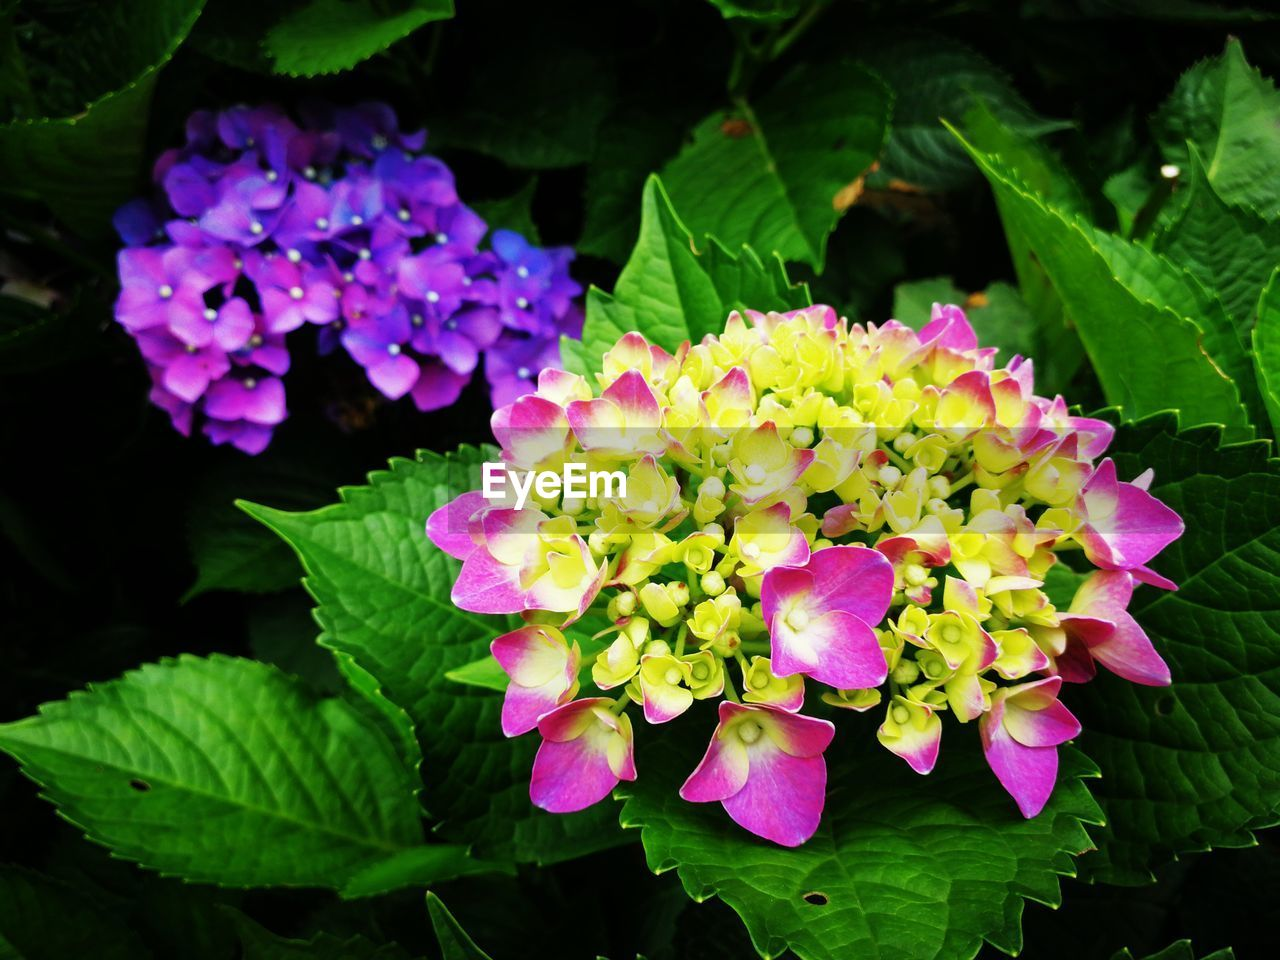 flower, beauty in nature, fragility, freshness, growth, petal, nature, plant, leaf, green color, flower head, pink color, blooming, outdoors, no people, day, lantana camara, close-up